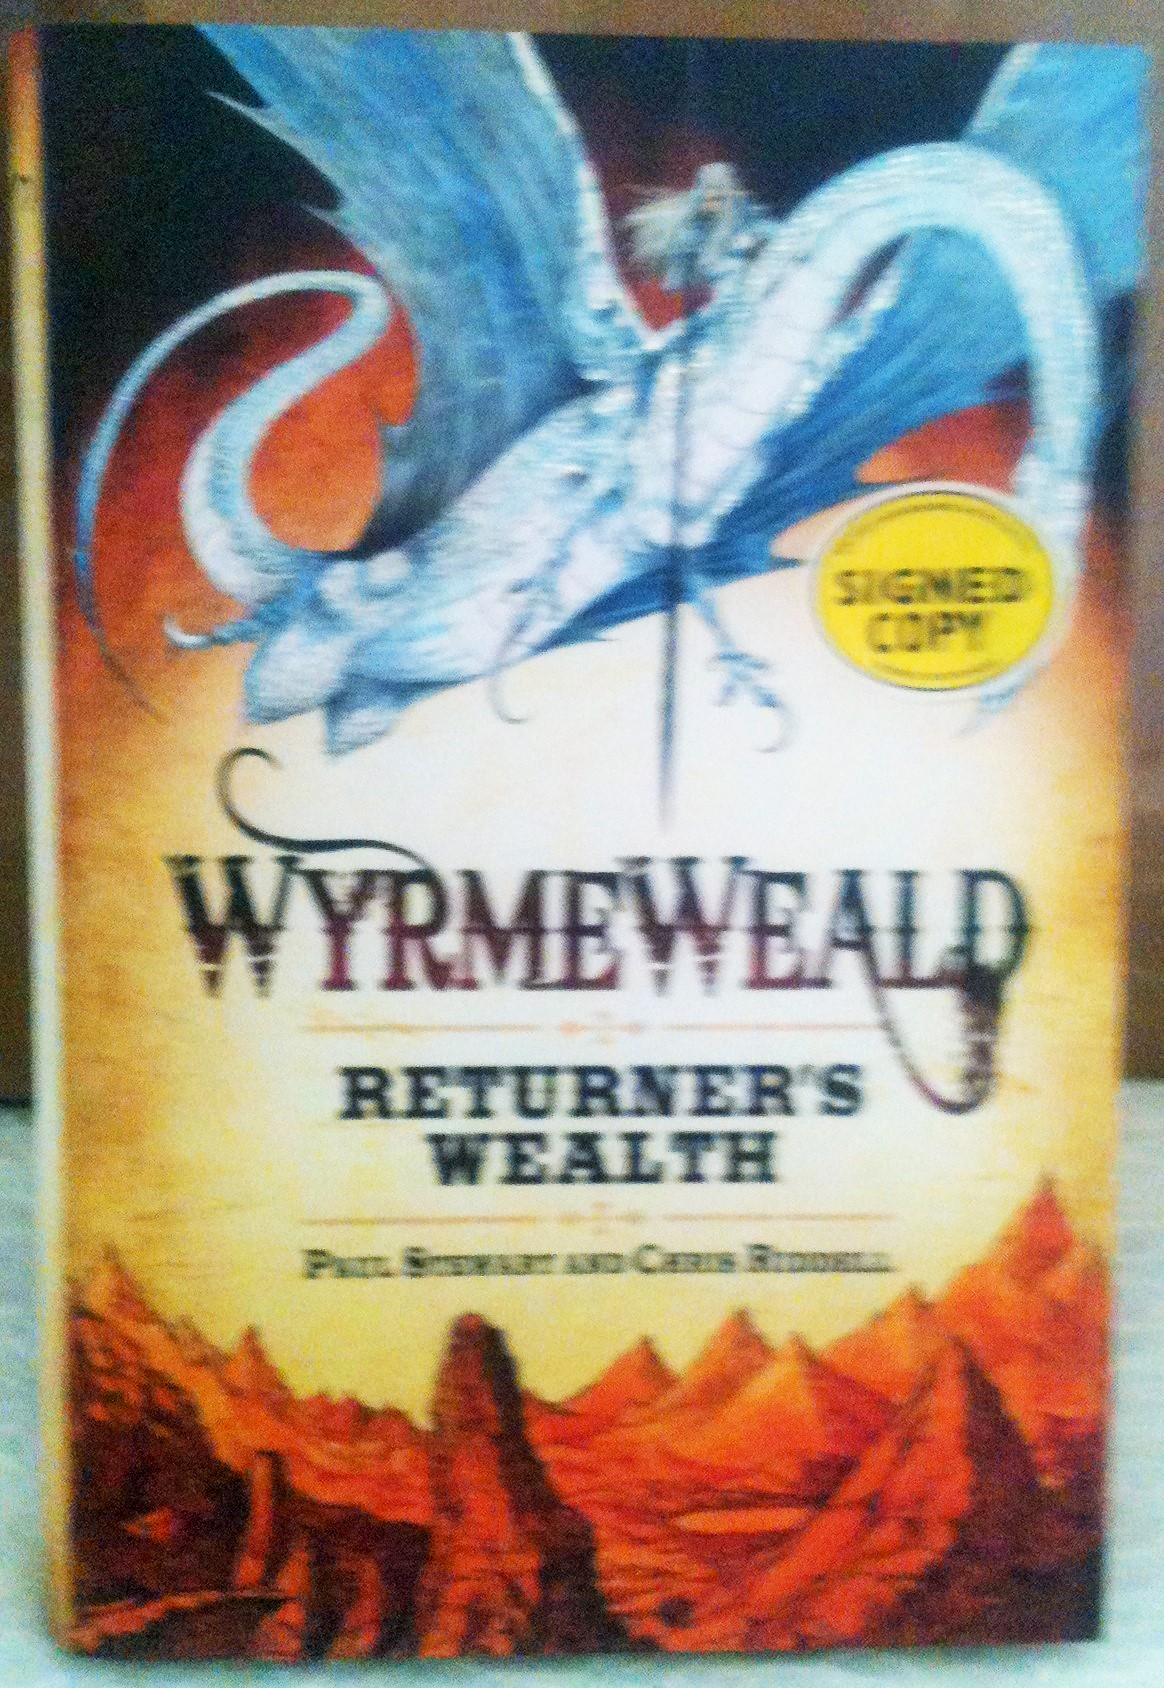 Image for Wyrmeweald Returner's Wealth Unread Fine Signed By Both Authors First Edition Hardback in Dustjacket